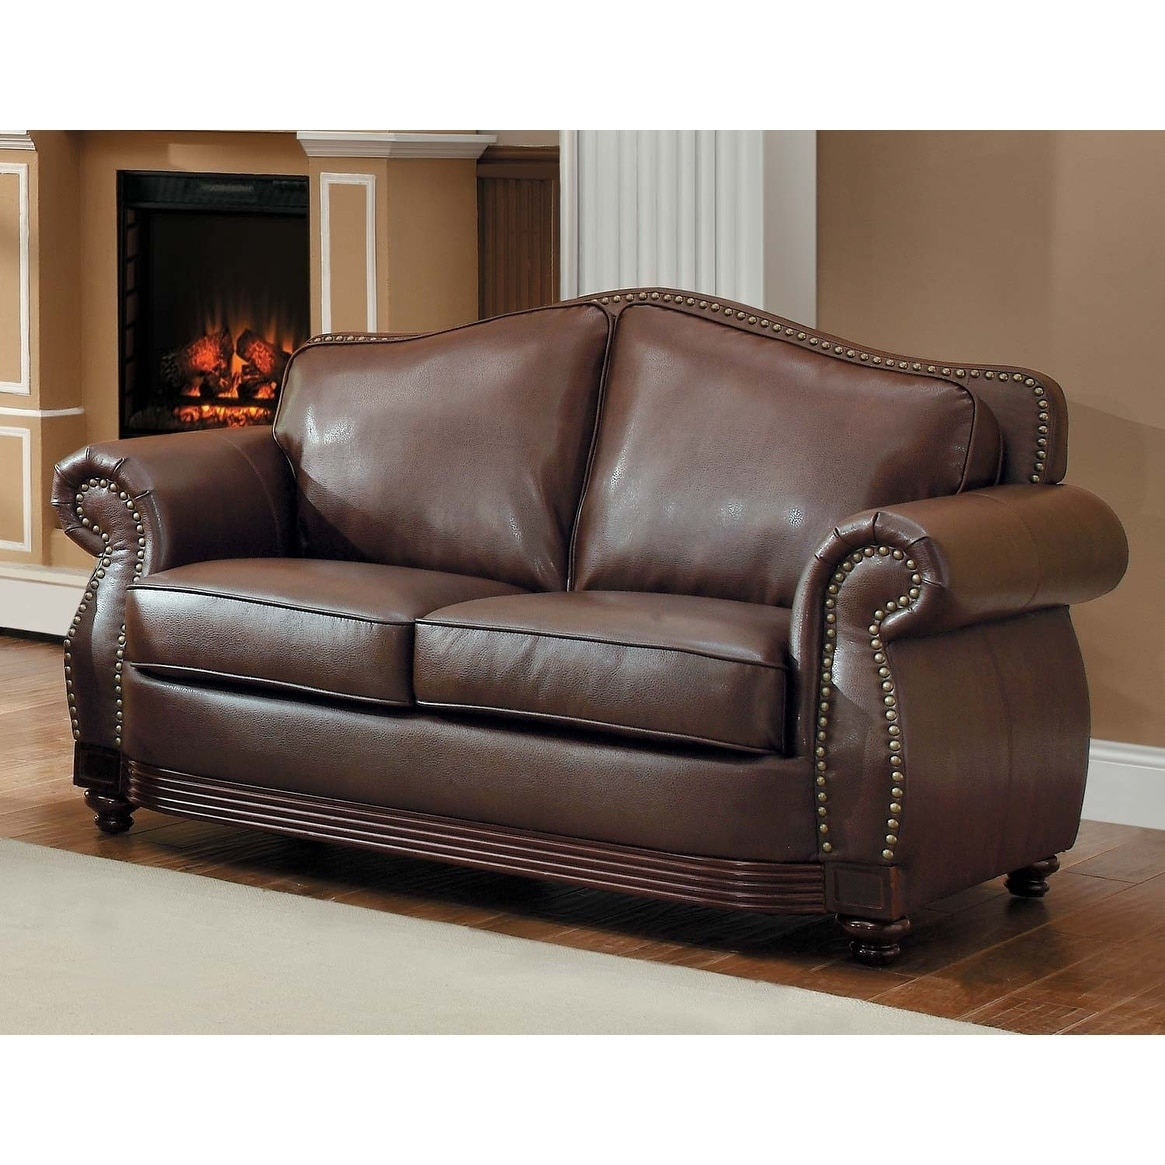 Fabulous Bonded Leather Loveseat With Rolled Arms And Camel Back Design Brown Creativecarmelina Interior Chair Design Creativecarmelinacom